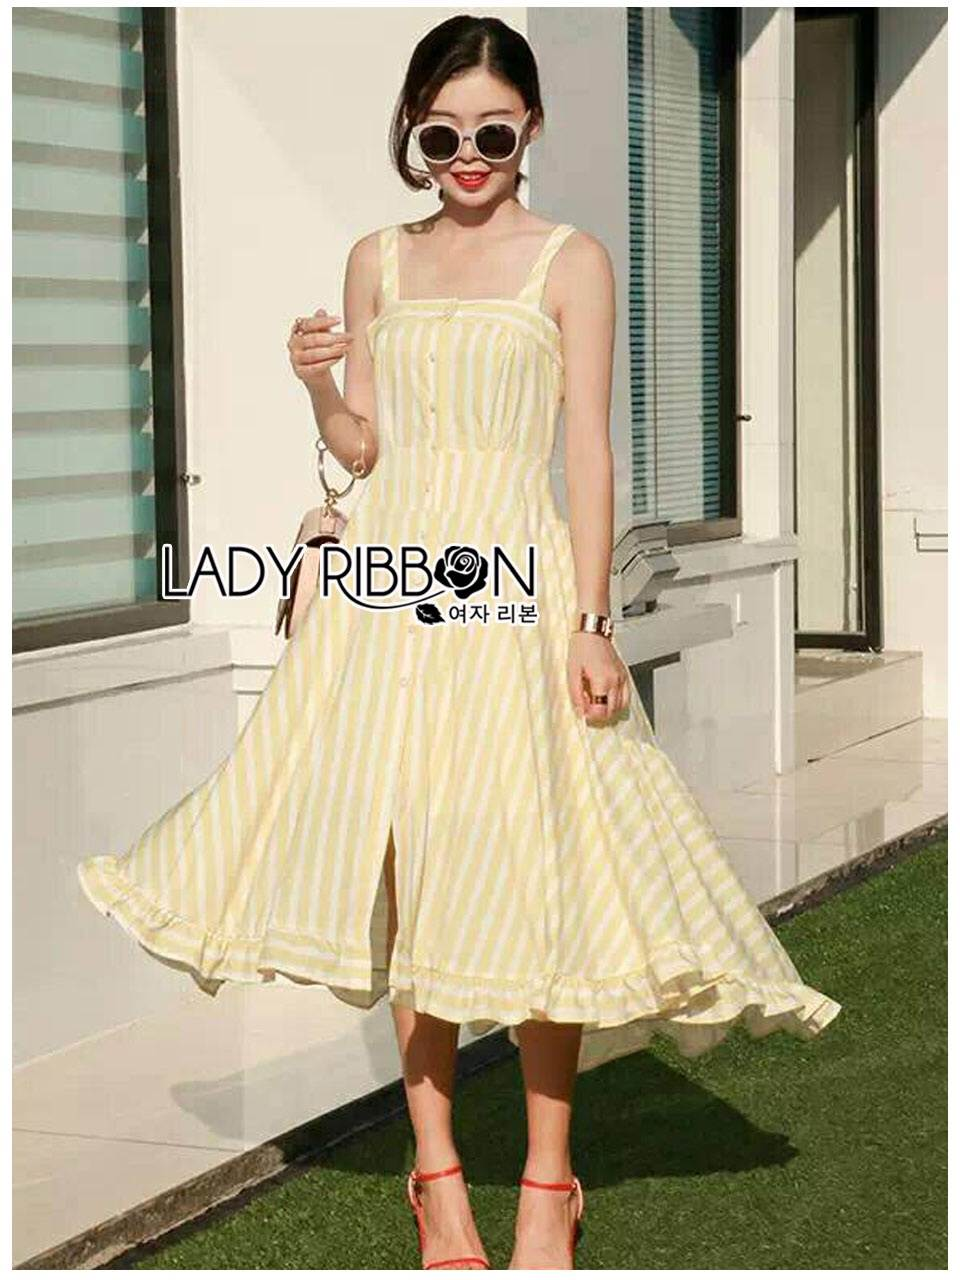 🎀 Lady Ribbon's Made 🎀Lady Anna Summer Breeze Colorful Striped Dress